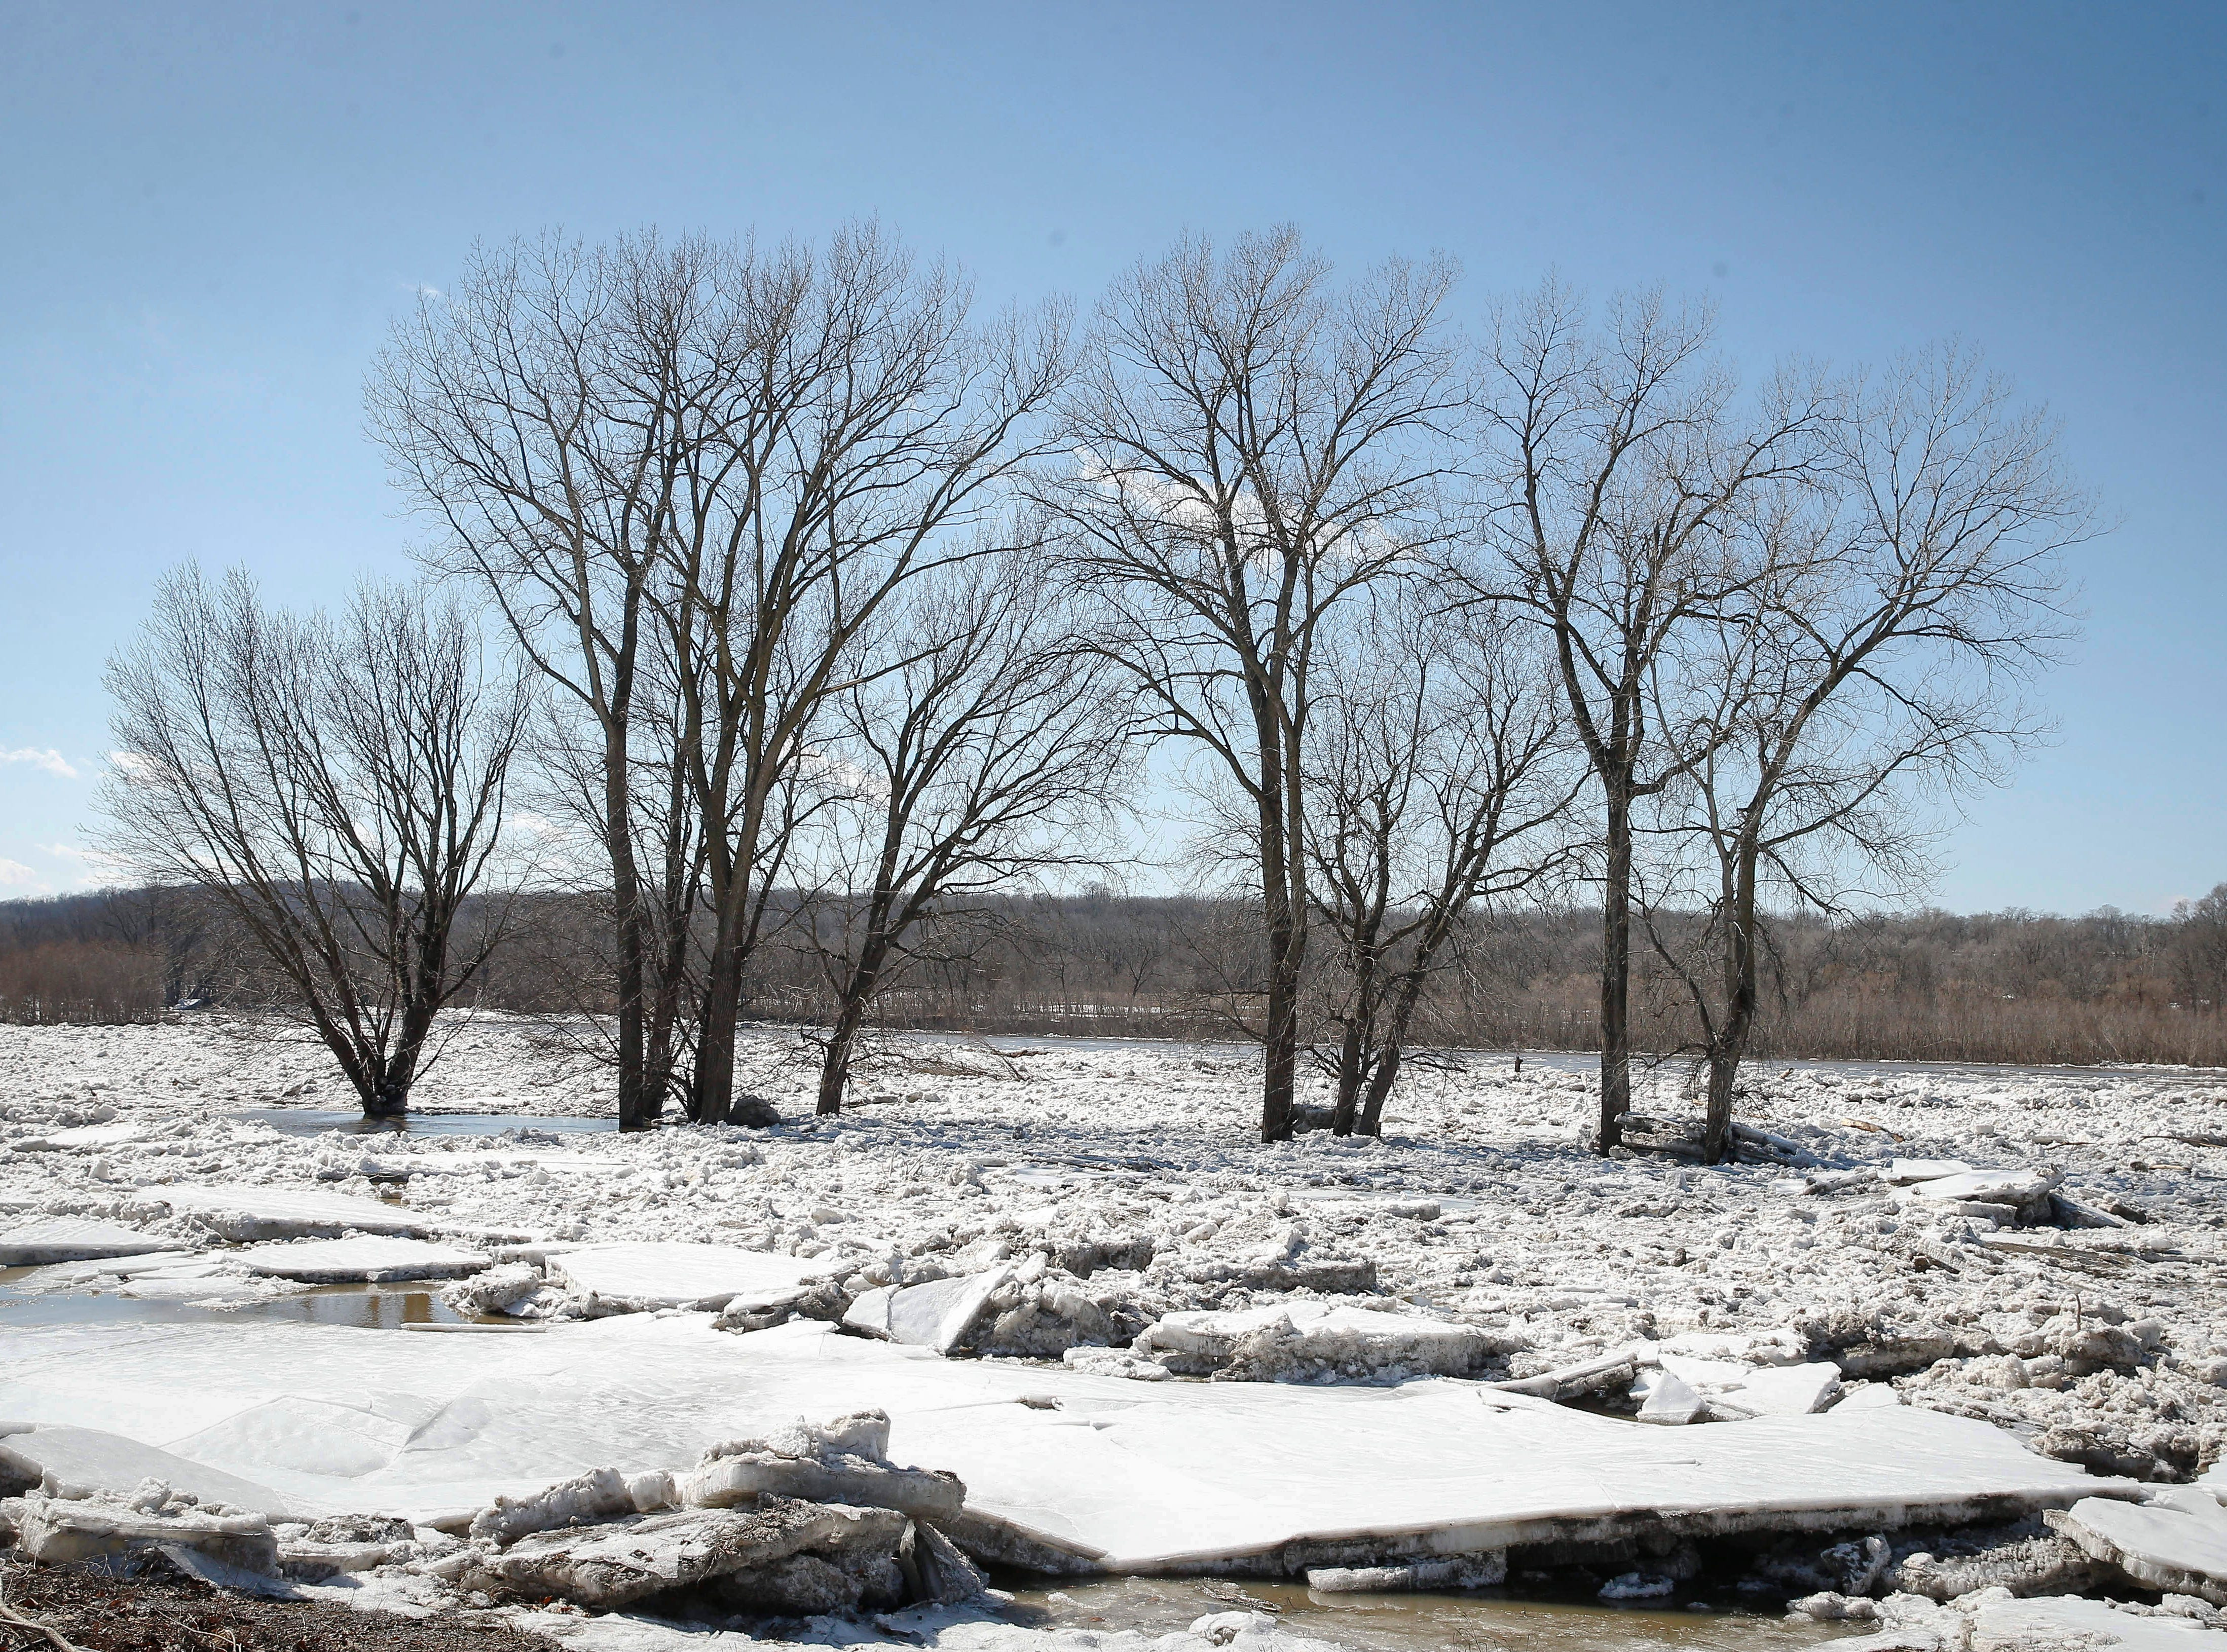 Large chunks of ice pile up along the swollen Des Moines River at Ledges Park on Friday, March 15, 2019.